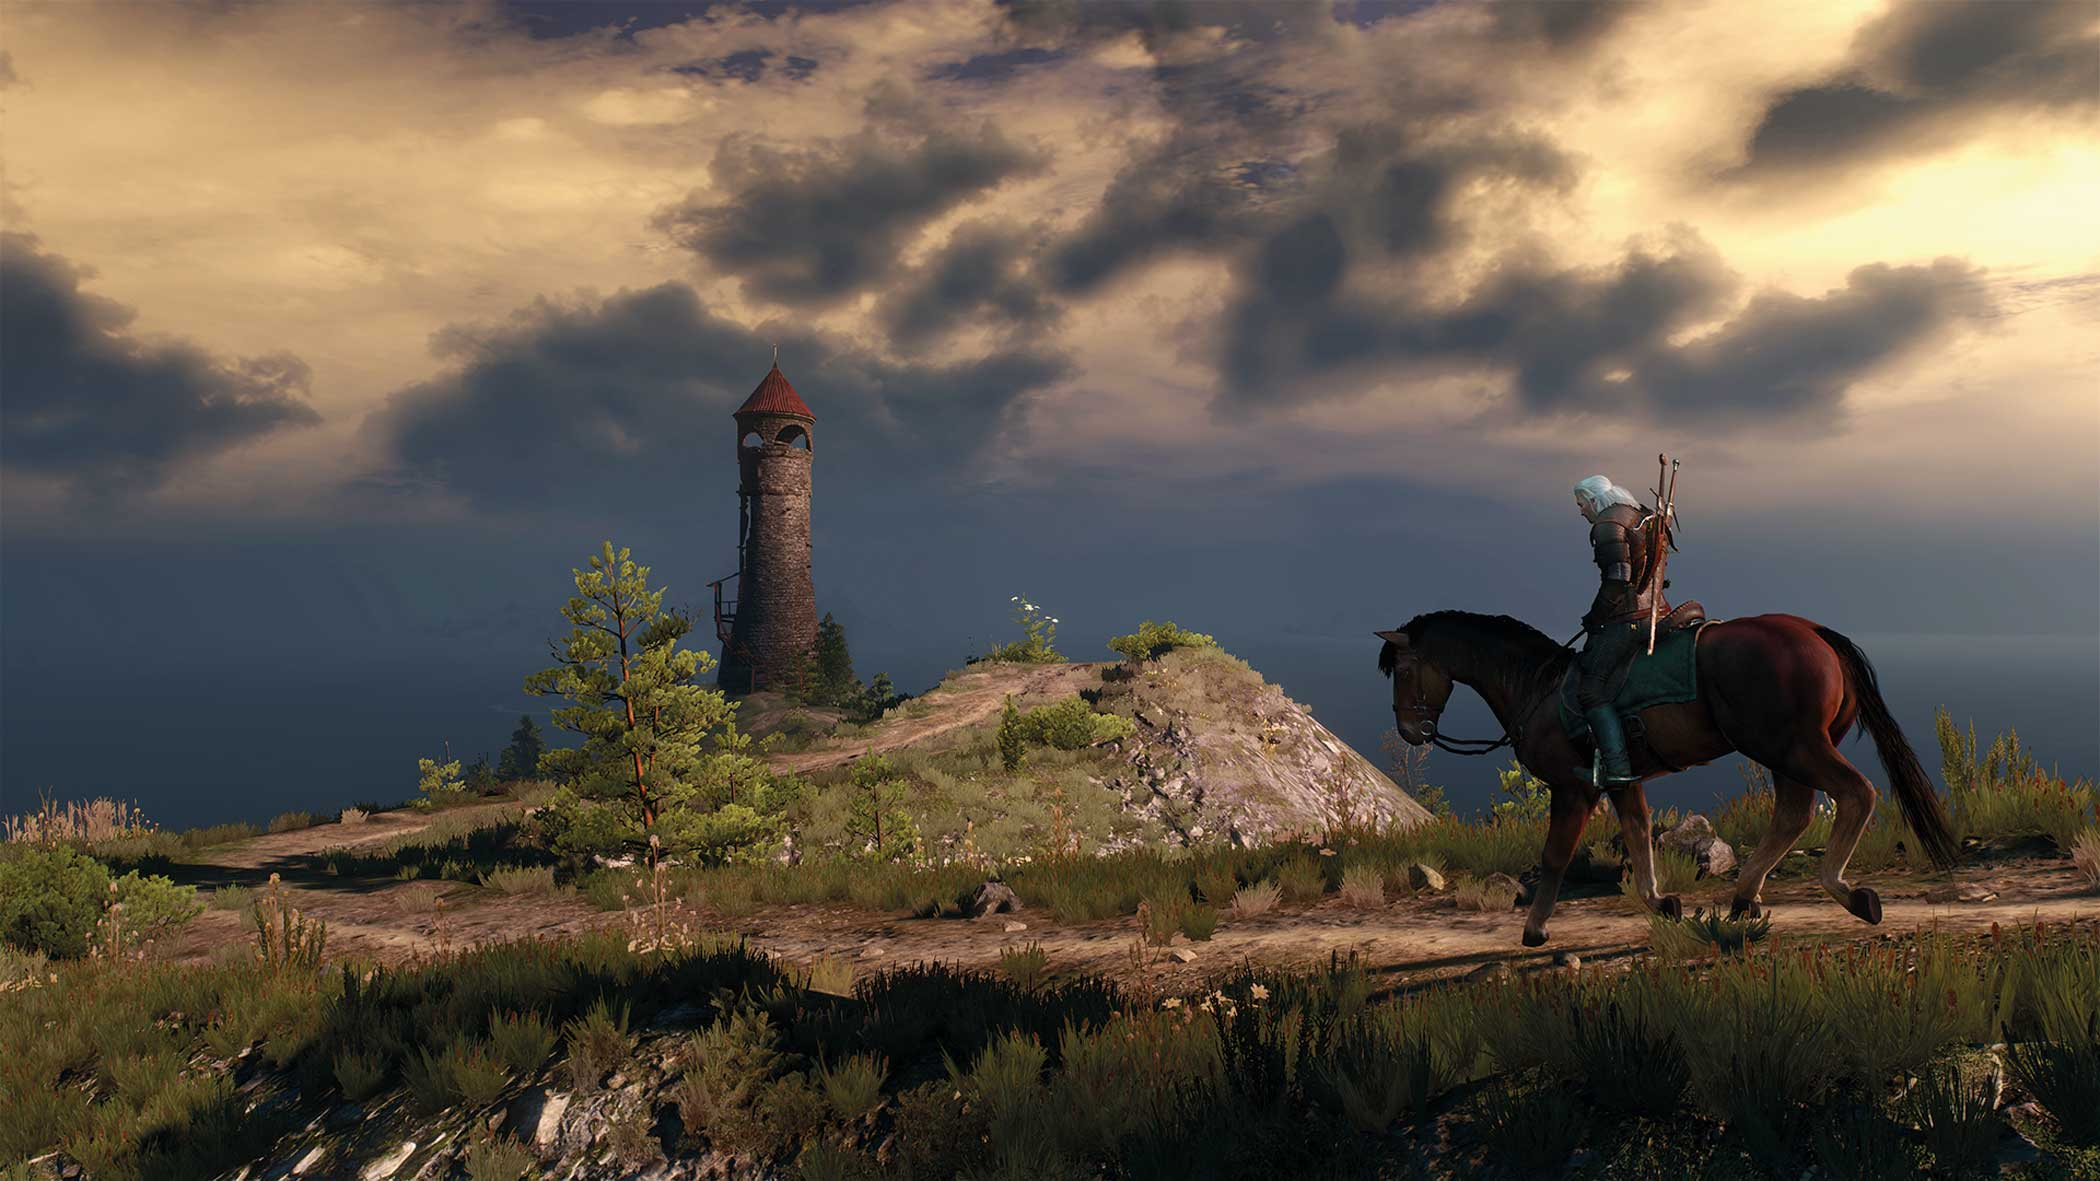 """<b>The Witcher 3: Wild Hunt</b> Design Process: <i>""""We took inspiration from various cultures and places. No Man's Land, one of the biggest areas to explore in the game, is very Slavic at its heart<i> – it's filled with ancient secrets, murky swamps and dense, dark forests.""""</i> - Jose Teixeira, Senior Visual Effects Artist, CD Projekt RED"""